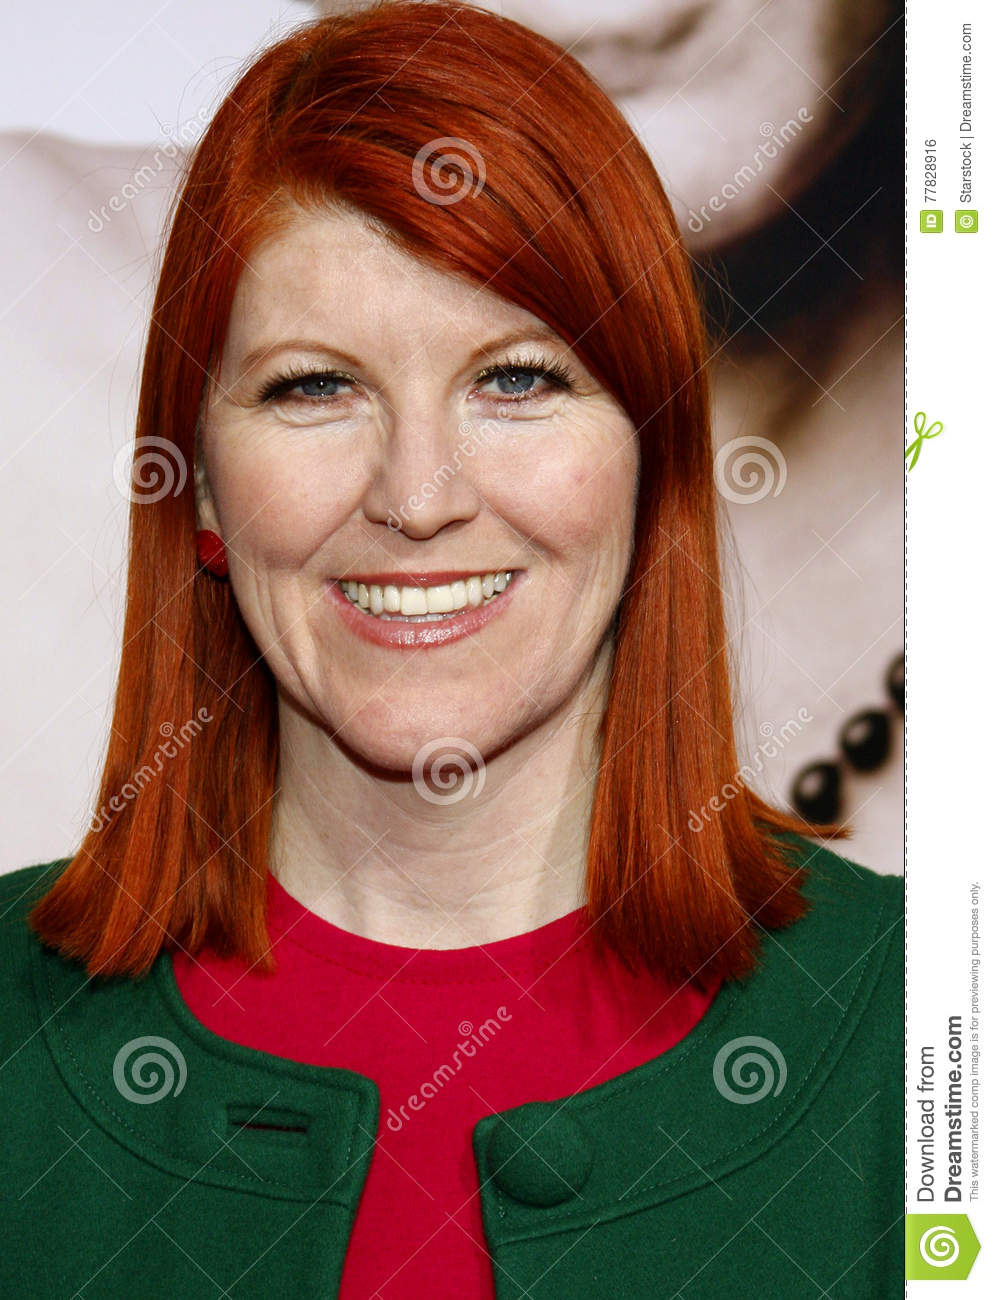 Kate Flannery nude (75 images) Erotica, Instagram, butt